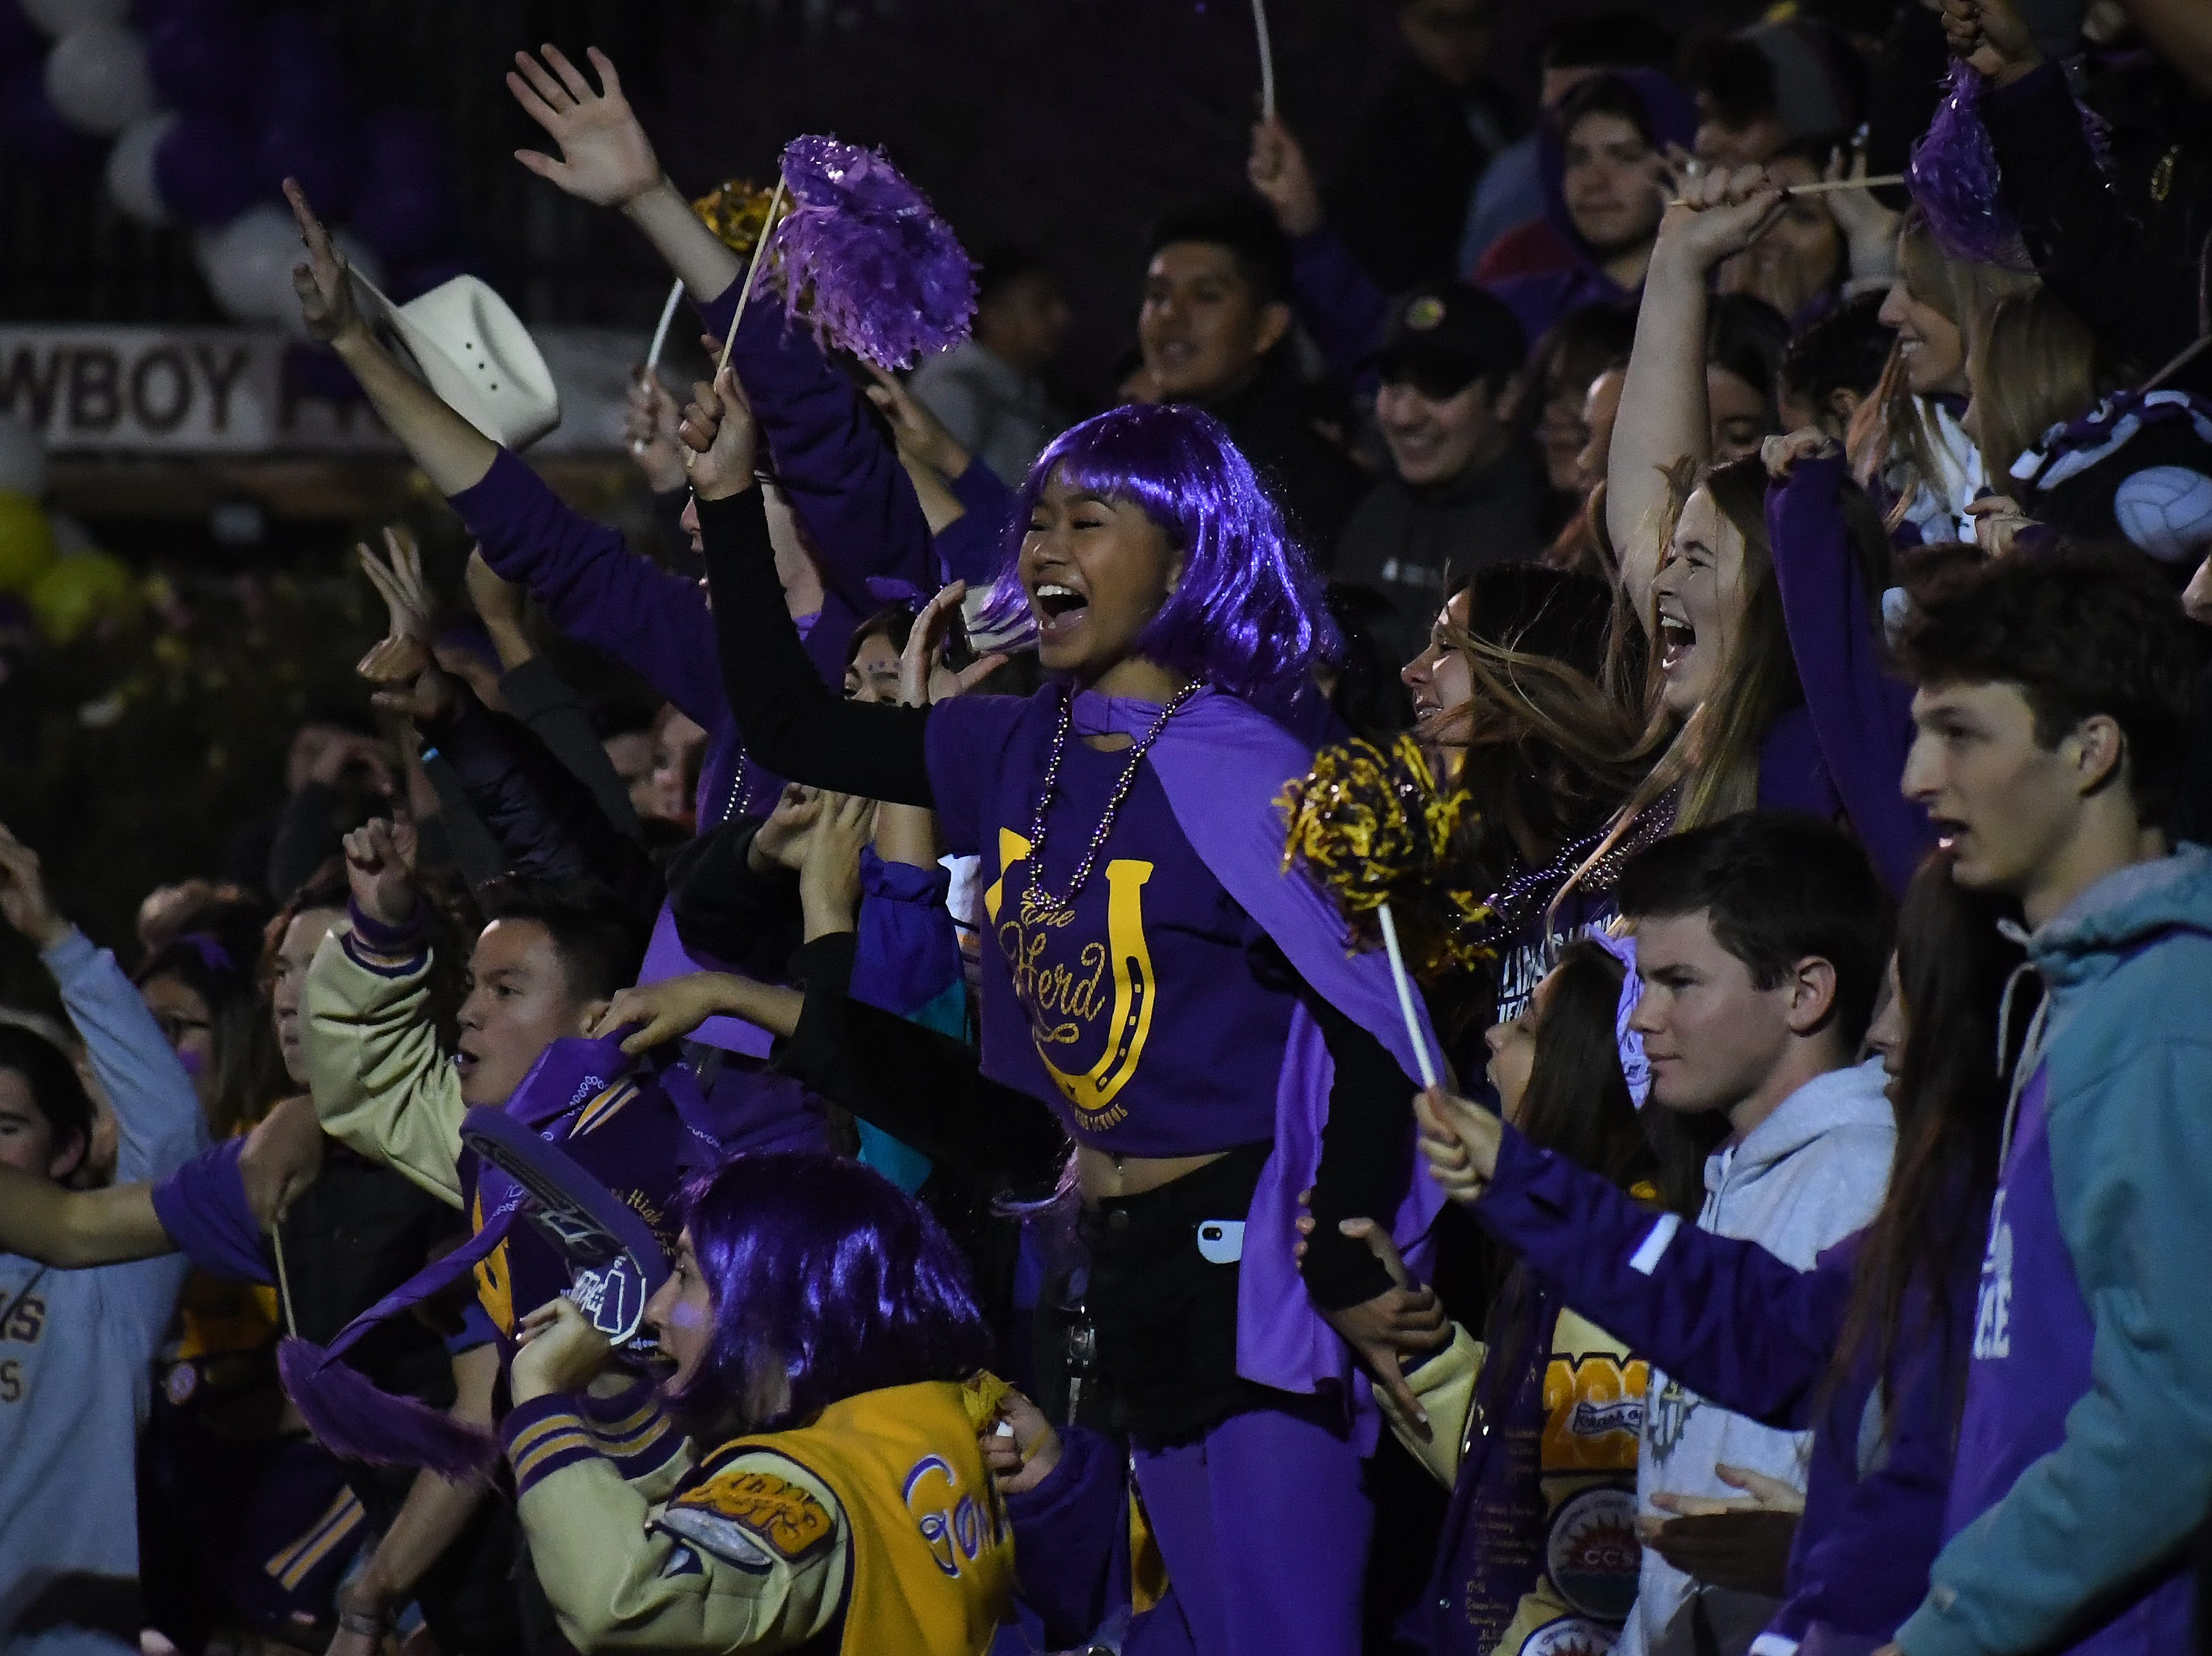 The Salinas student section reacts to a touchdown by Poe Gaskins.